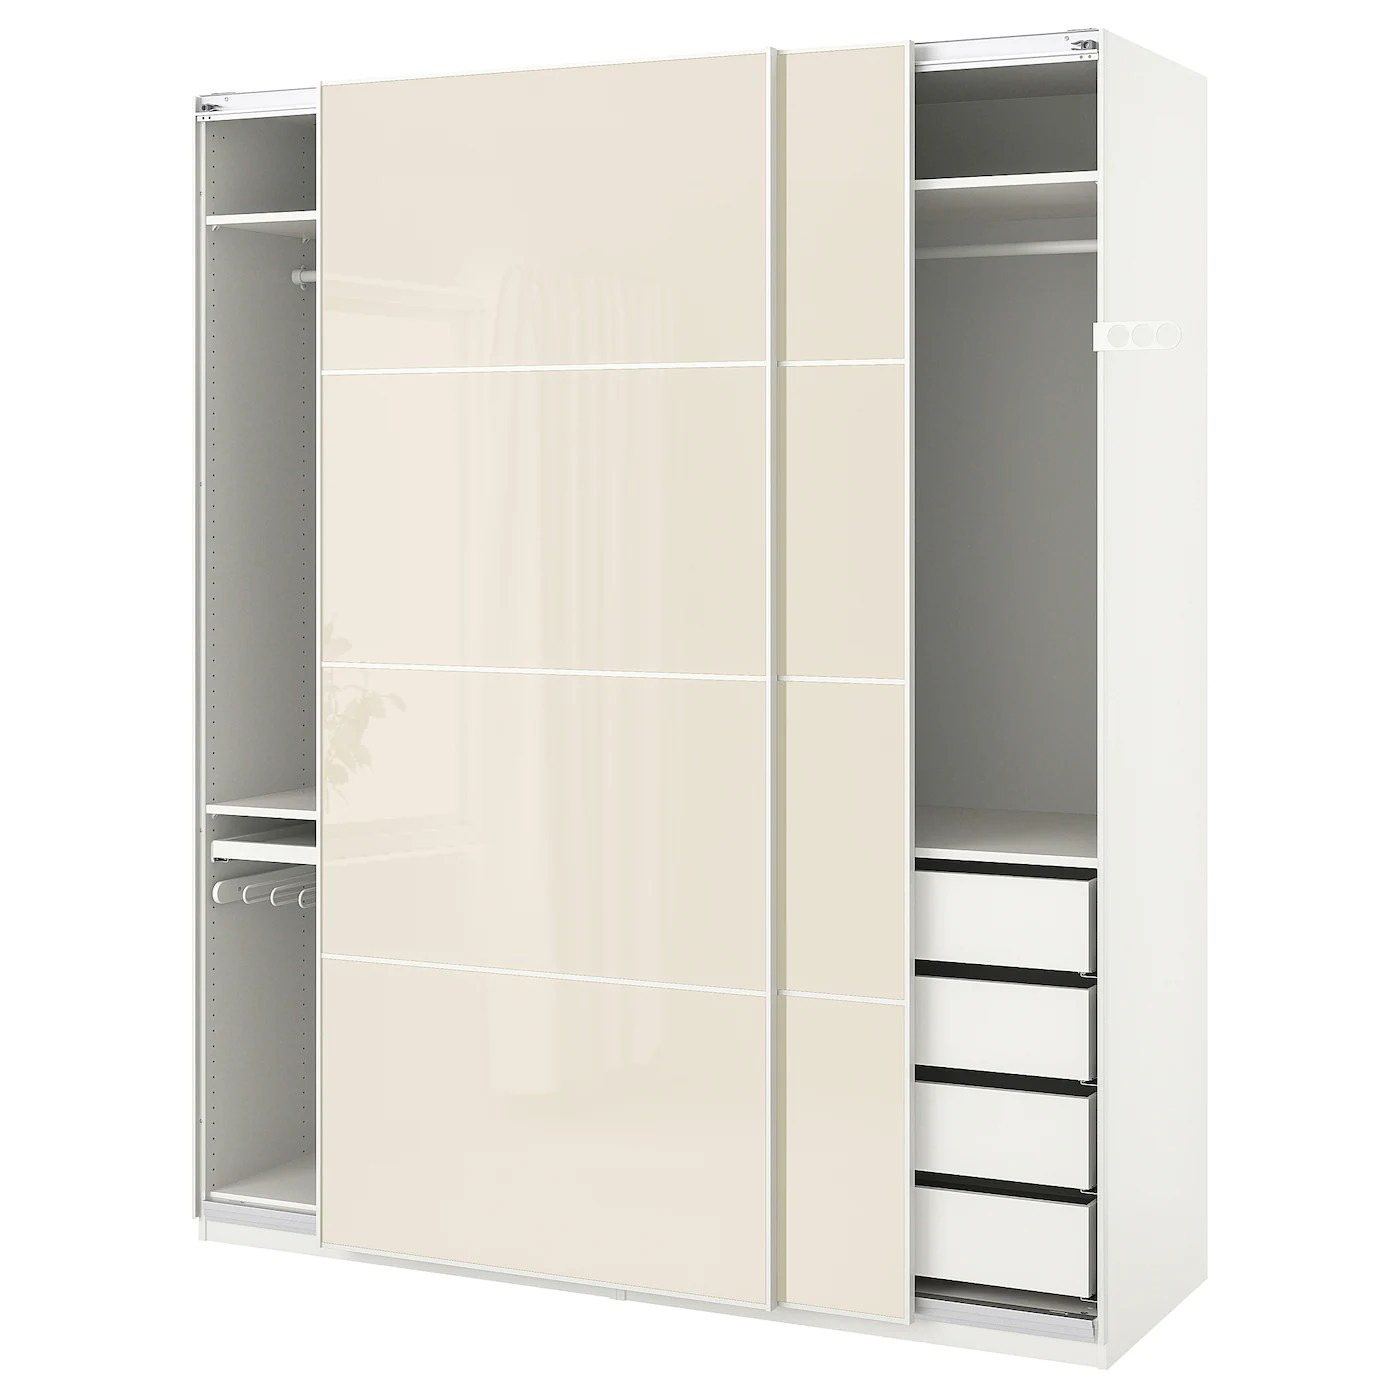 Ikea Schrank 100 X 60 Pax Wardrobe White Hokksund High Gloss Hokksund Light Beige